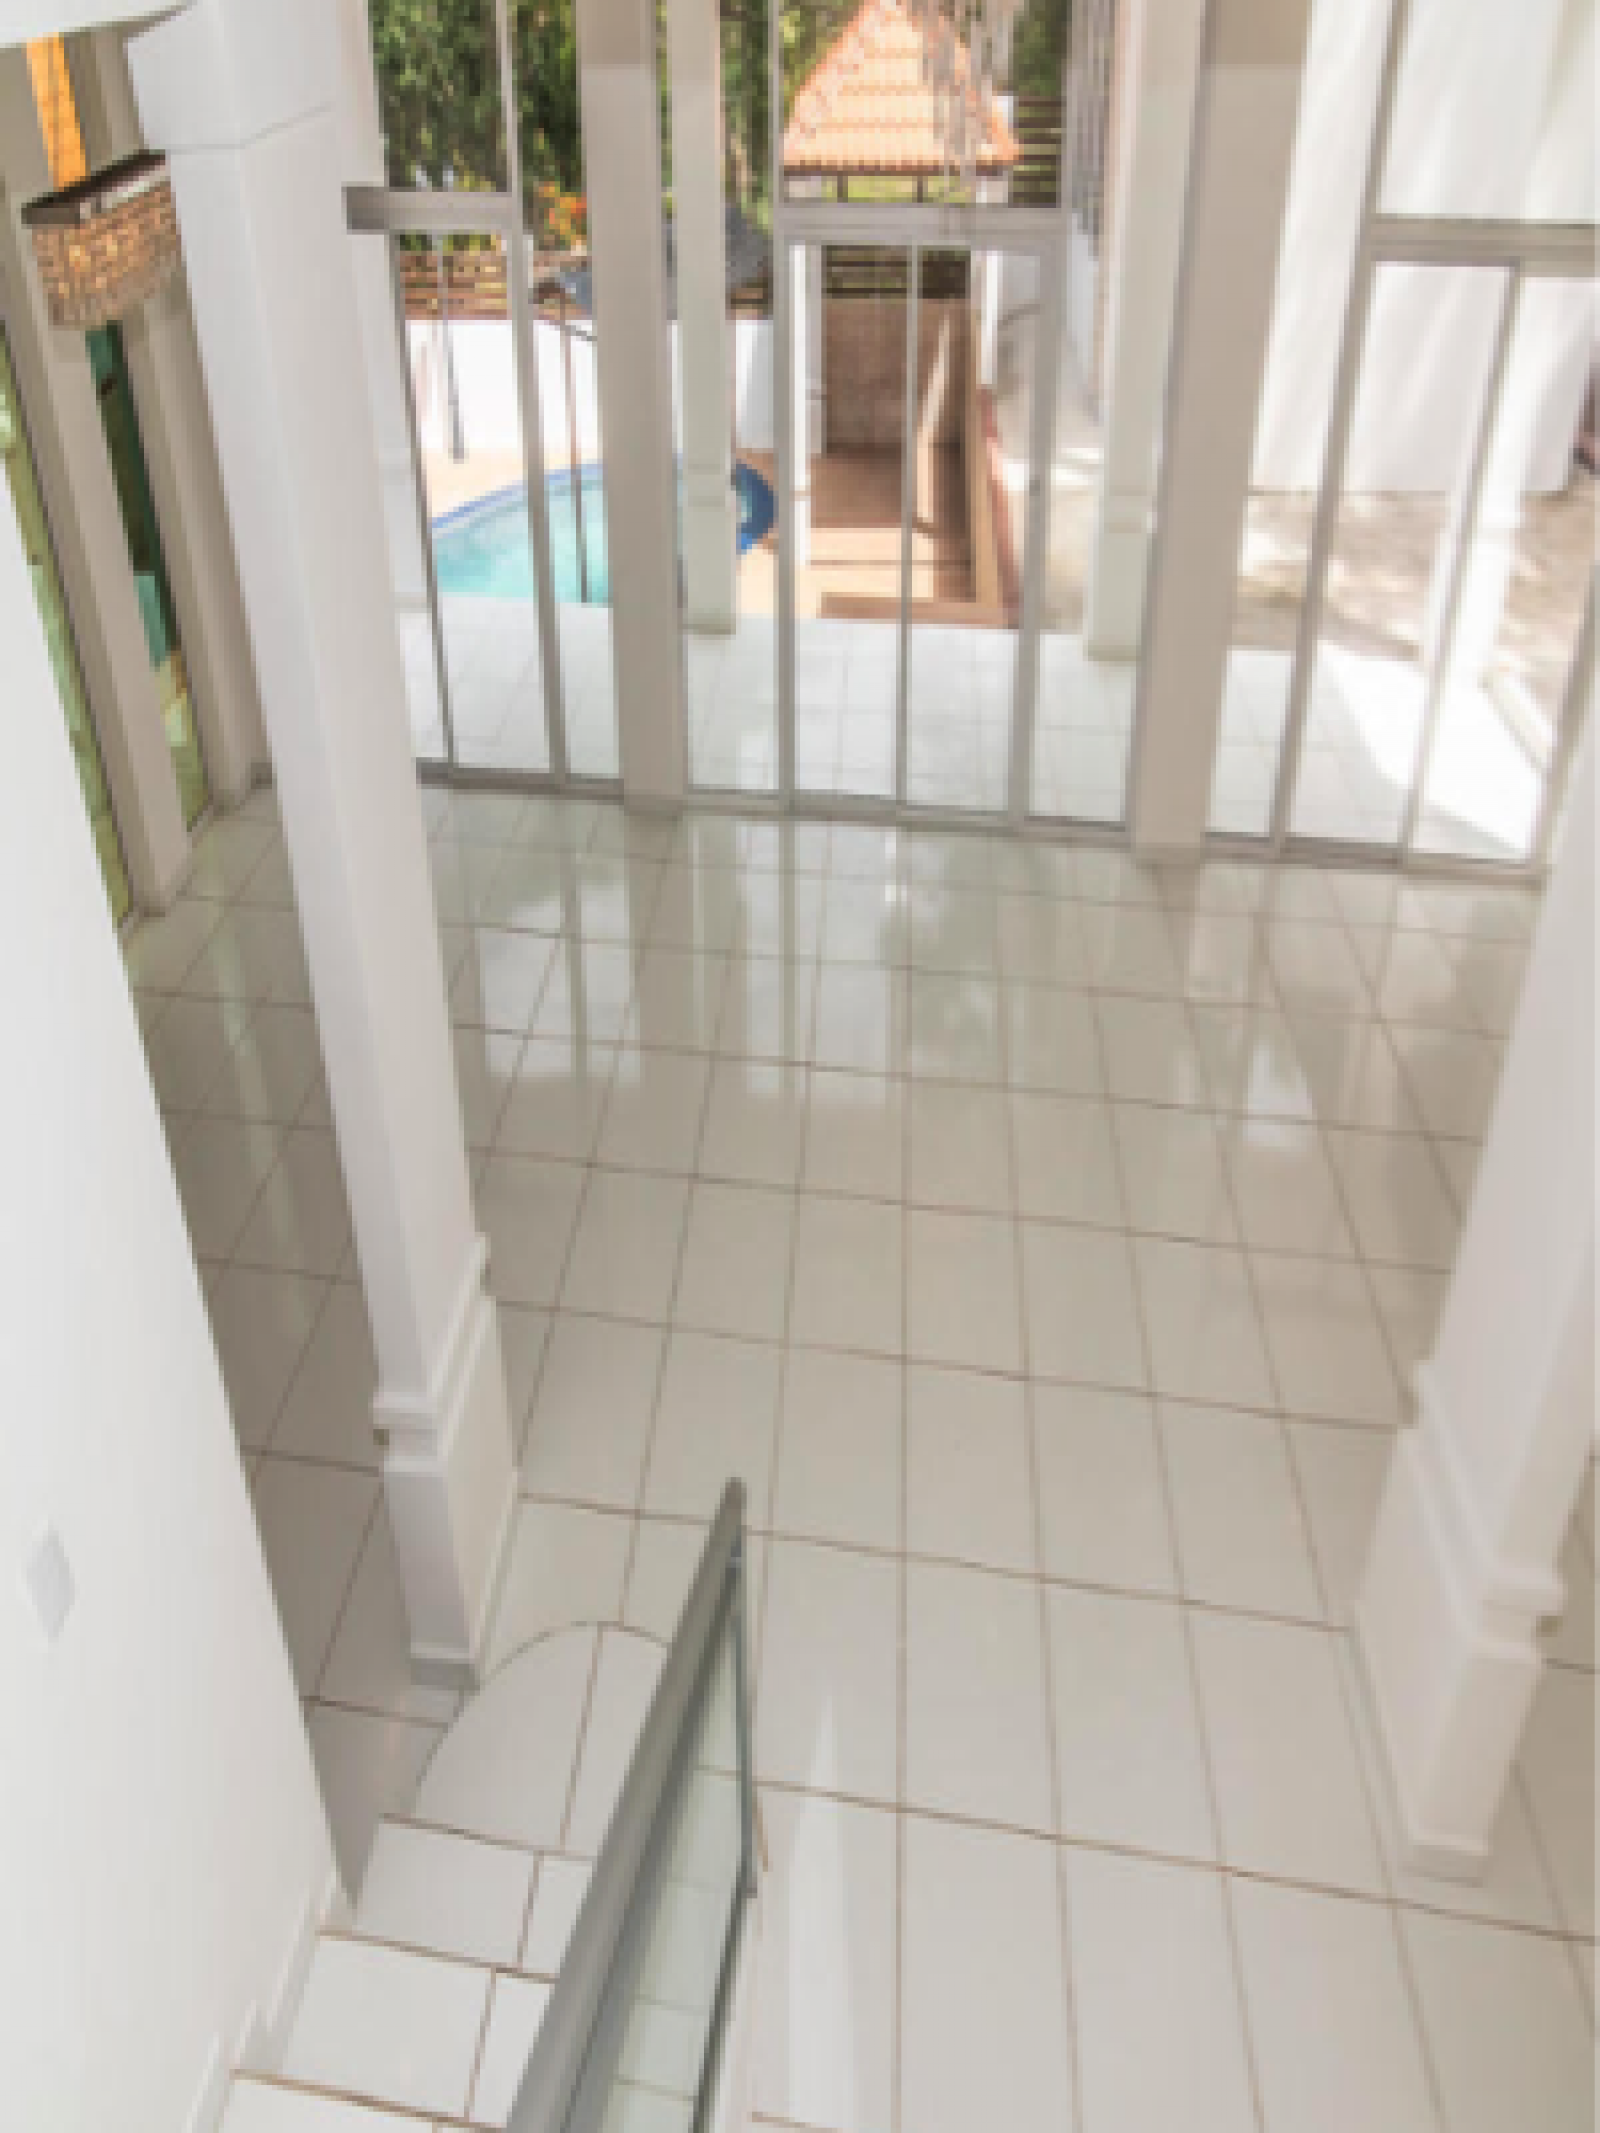 View of living area and pool area from stairs